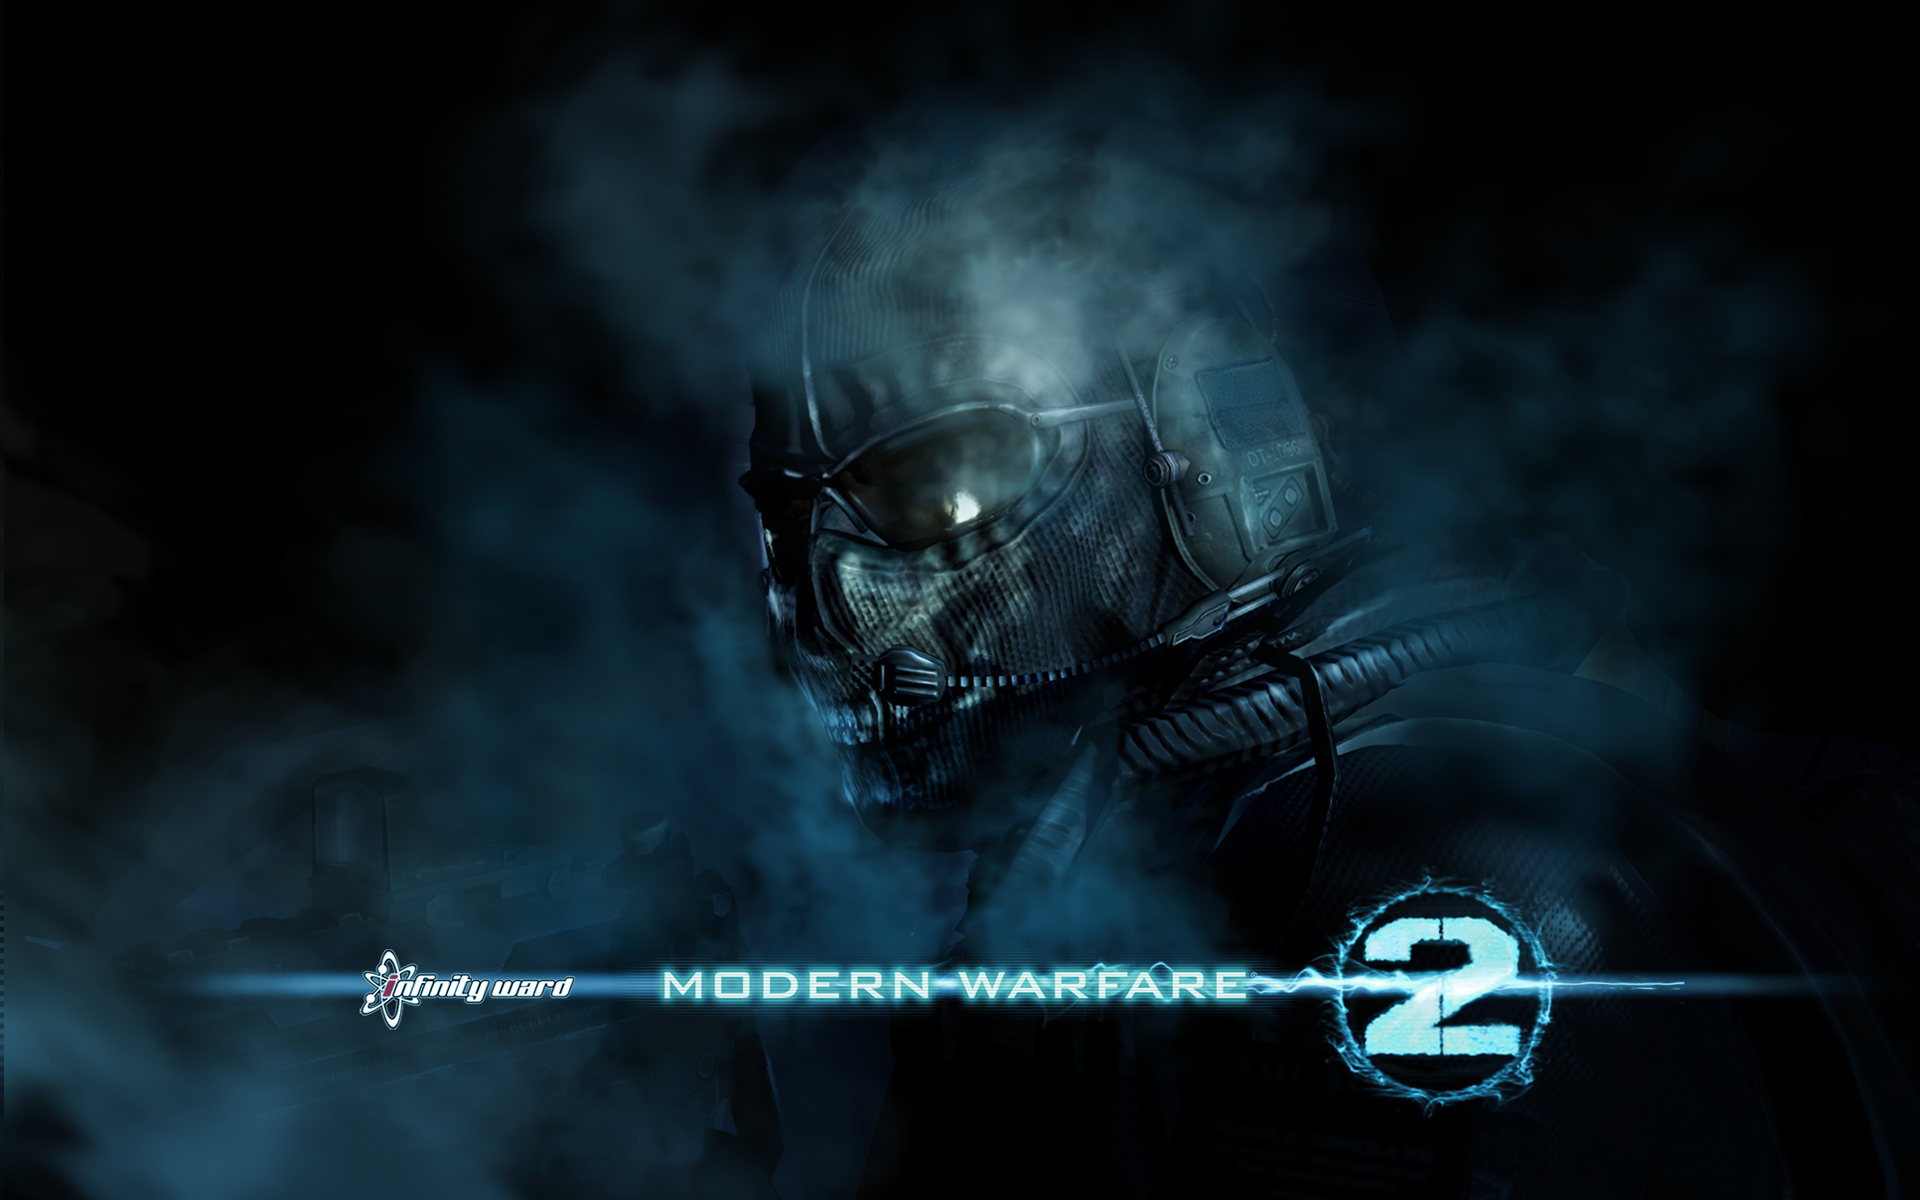 modern warfare 2 images ghost hd wallpaper and background